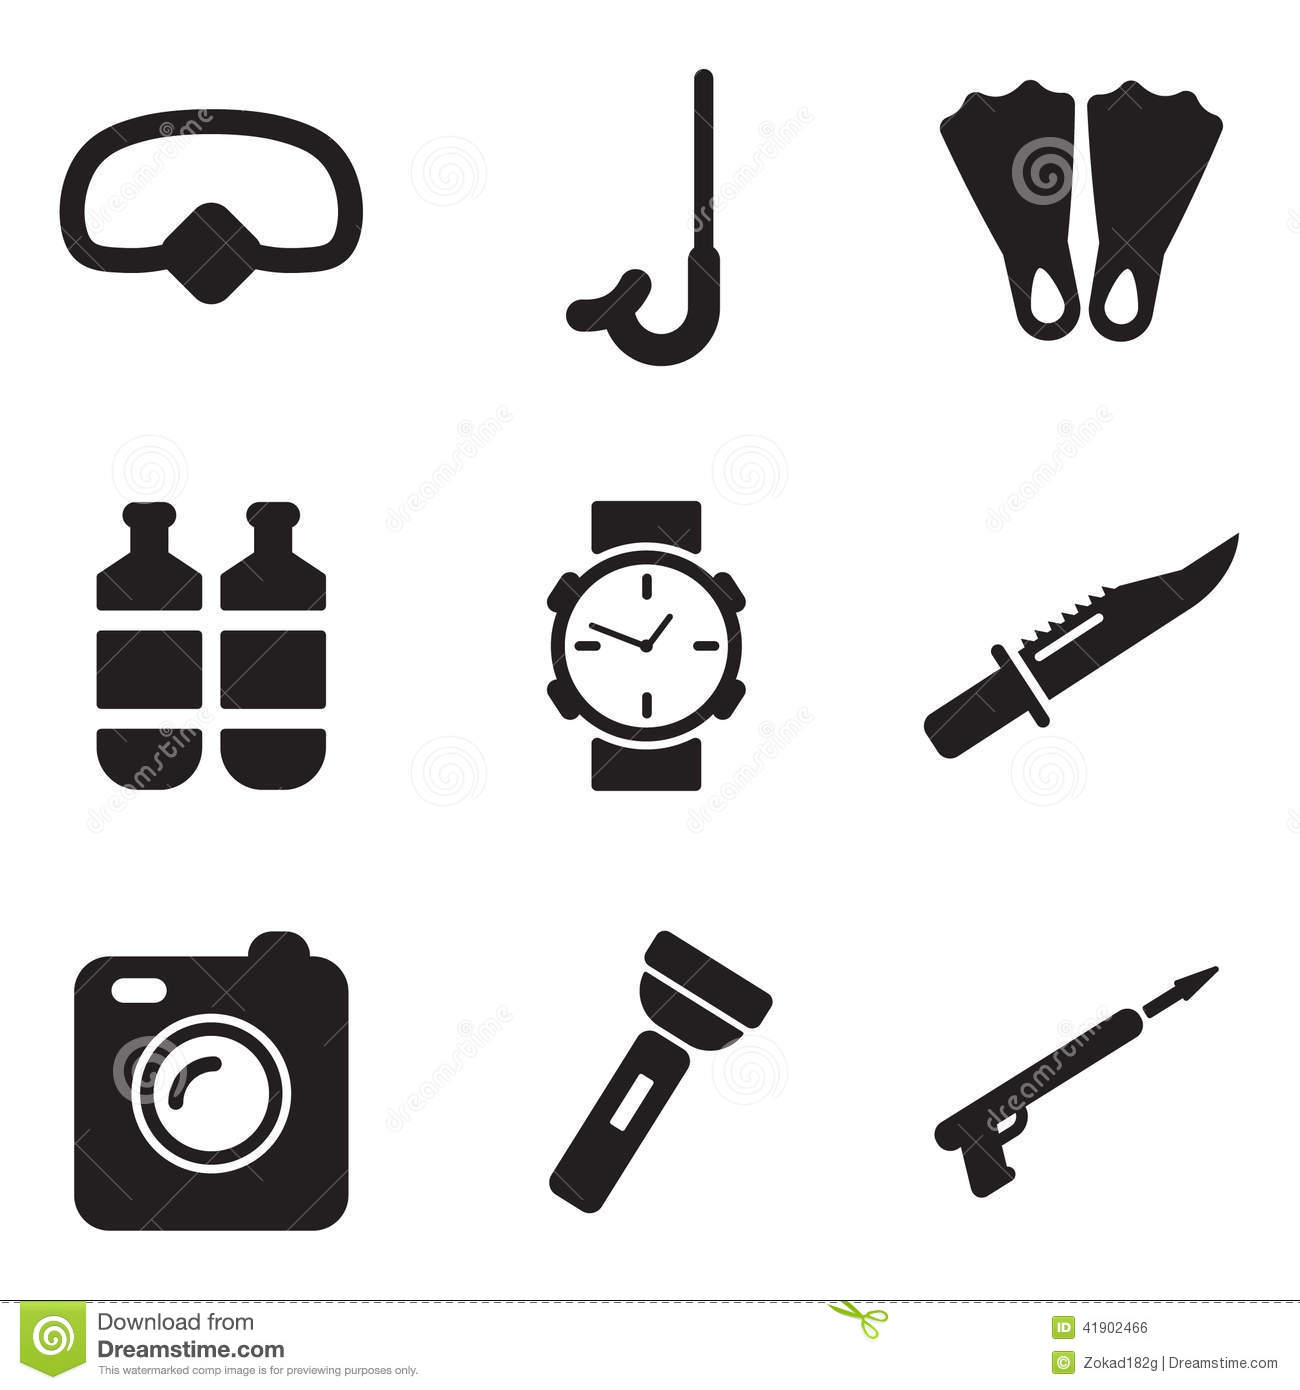 164456702 further Illustration Stock Ensemble D Ic Ne De Plong C3 A9e Image42662037 together with Fish Coloring Page as well Stock Photos Snorkeling Gear Drawing Image22459453 moreover AMX 30. on tank snorkel